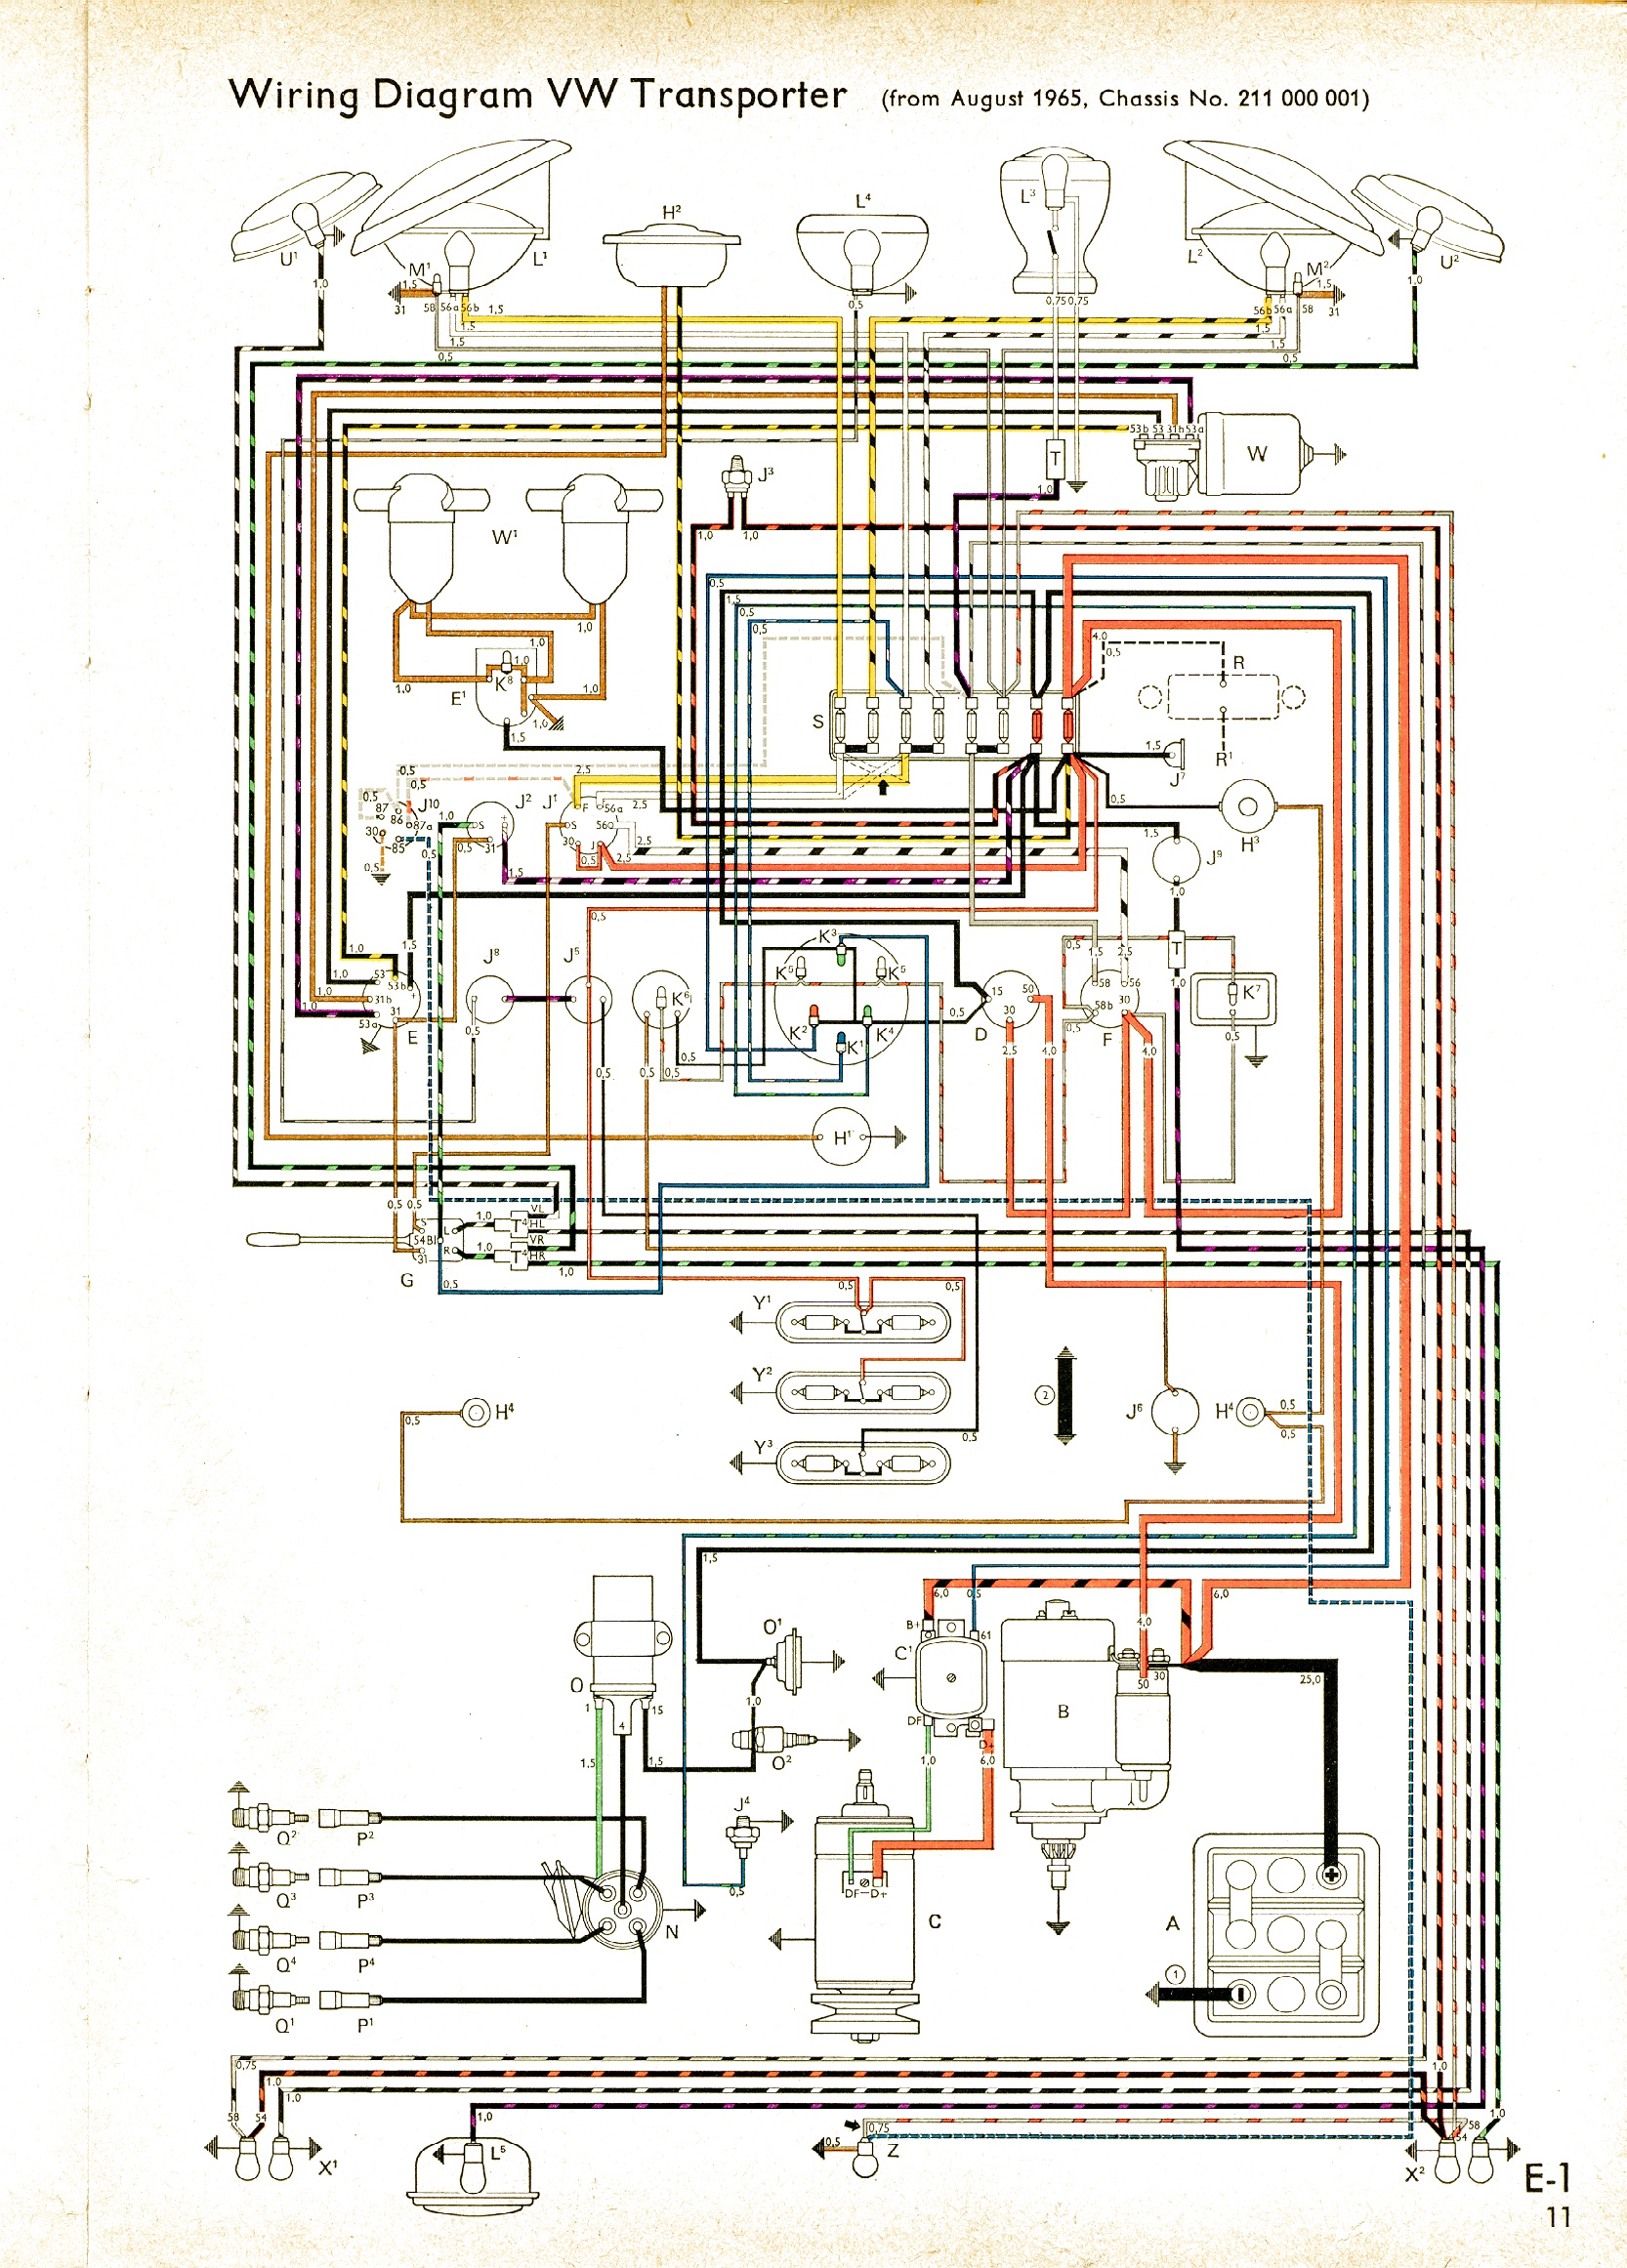 bus 65 vintagebus com vw bus (and other) wiring diagrams 2001 vw beetle wiring diagram at mifinder.co